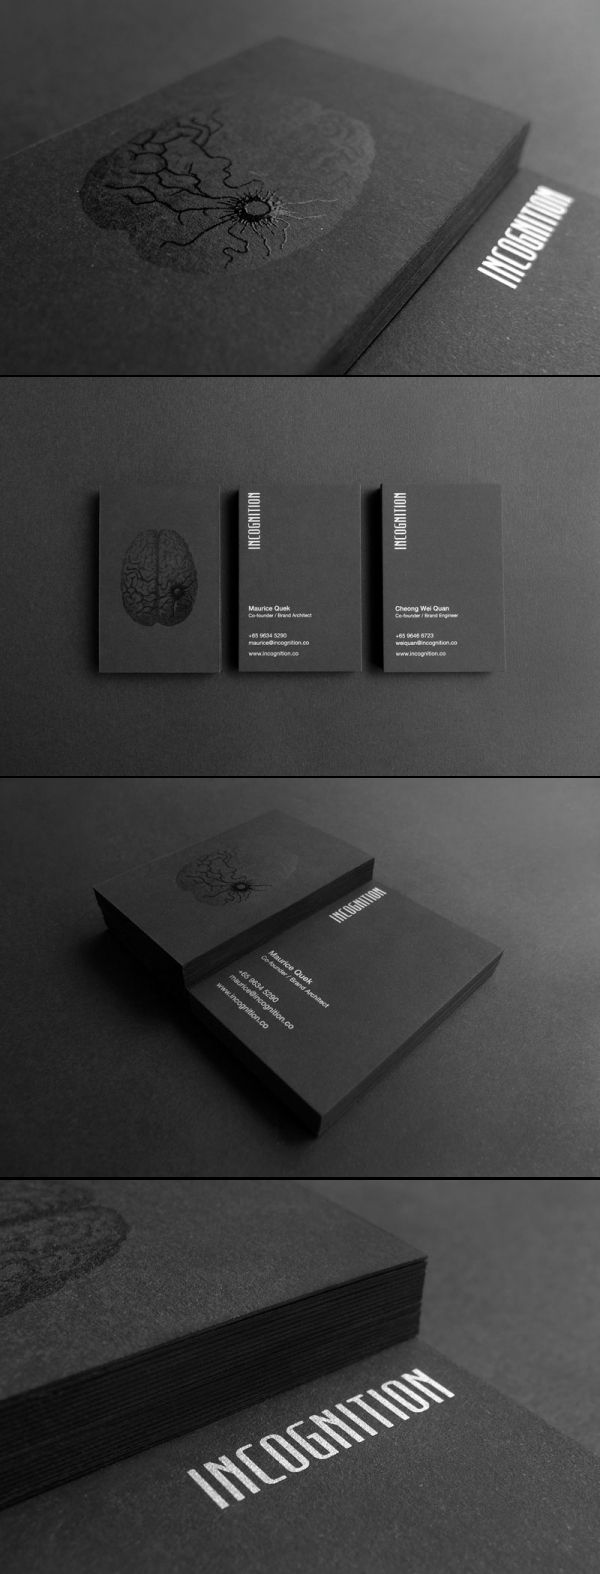 Unique Business Card, Incognition #businesscards #design (http://www.pinterest.com/aldenchong/)